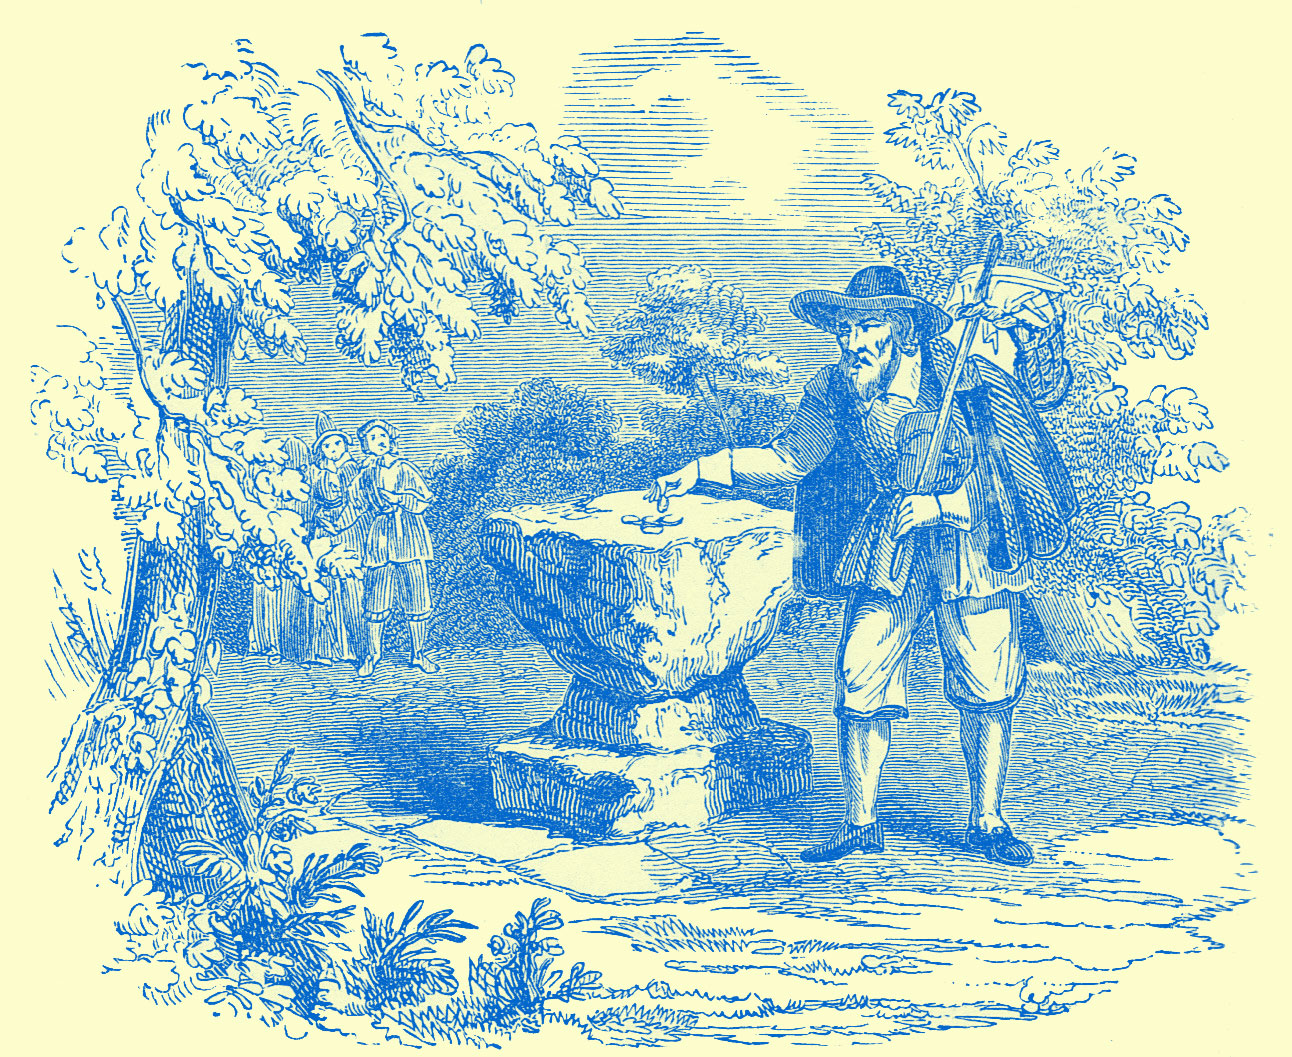 A Large Stone on a Pedestal with a few coins on it.  A man is reaching for it, who is holding a knapsack on a stick which is resting over his other shoulder.  This is surrounded by some trees, and a in the background are  two people at a distance watching him.